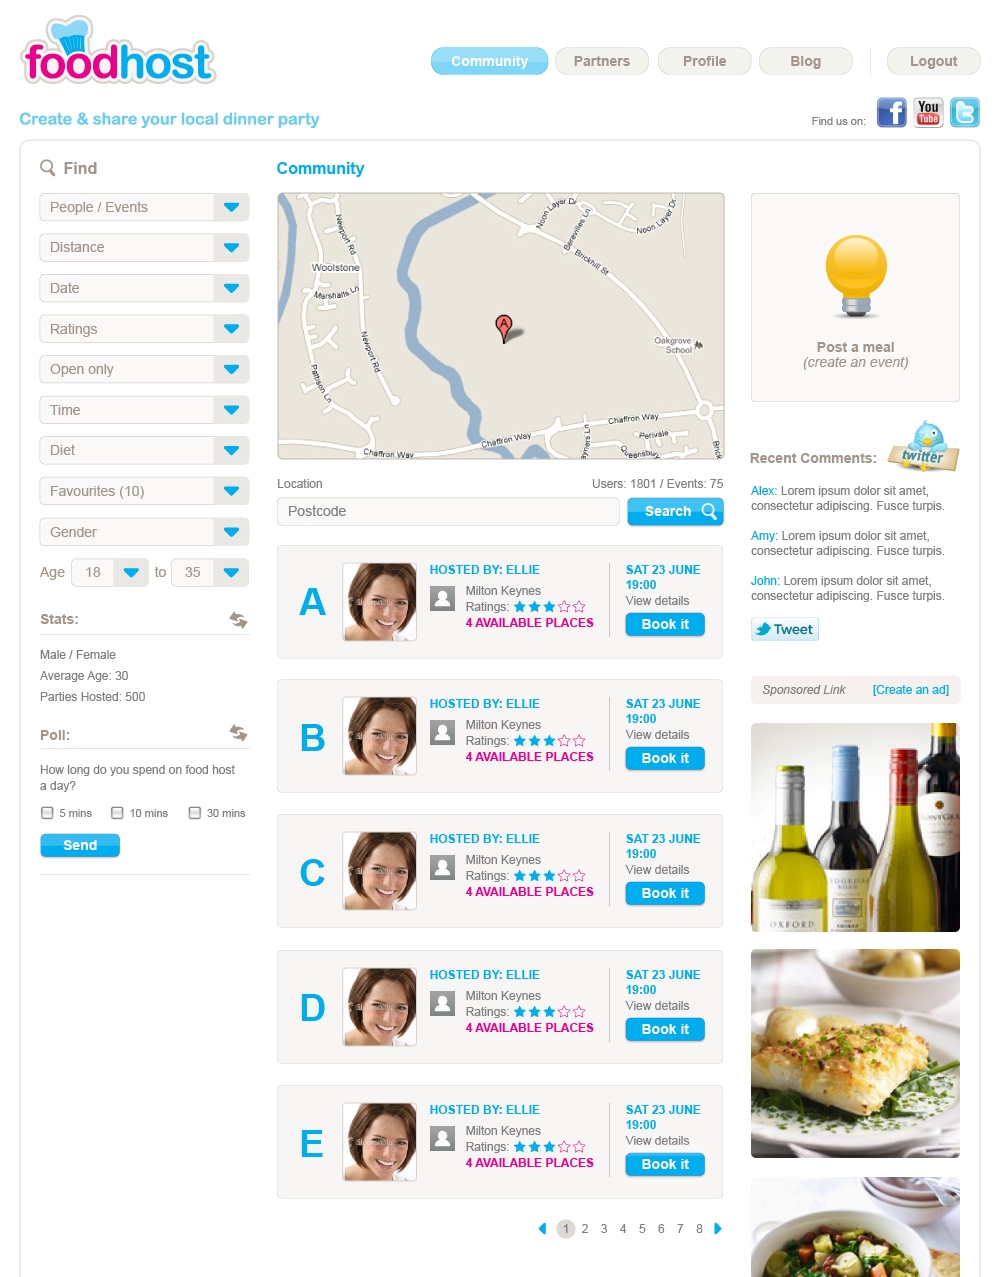 Foodhost12 Foodhost: The online marketplace for dinner parties